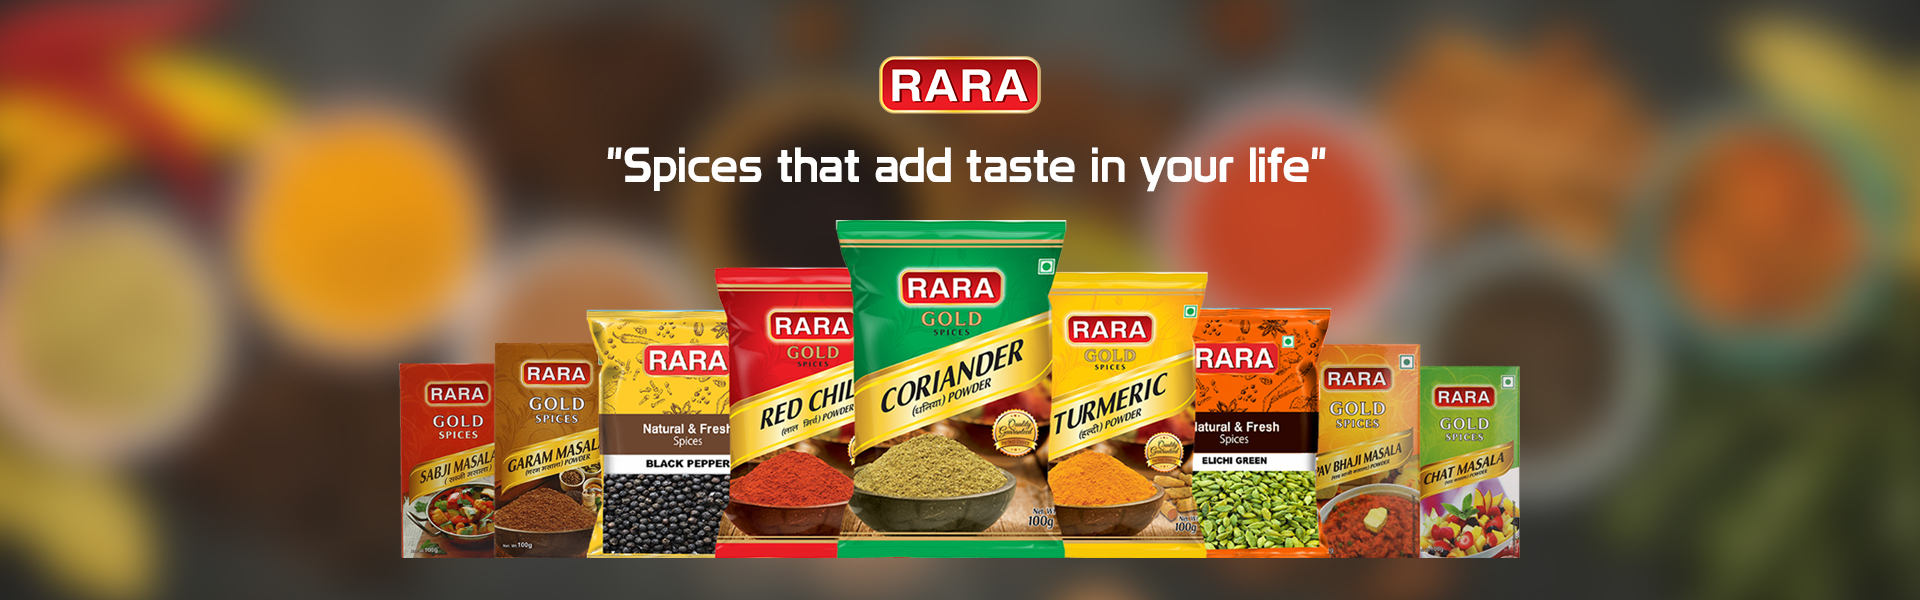 Rara Spices Pure n Natural Spices